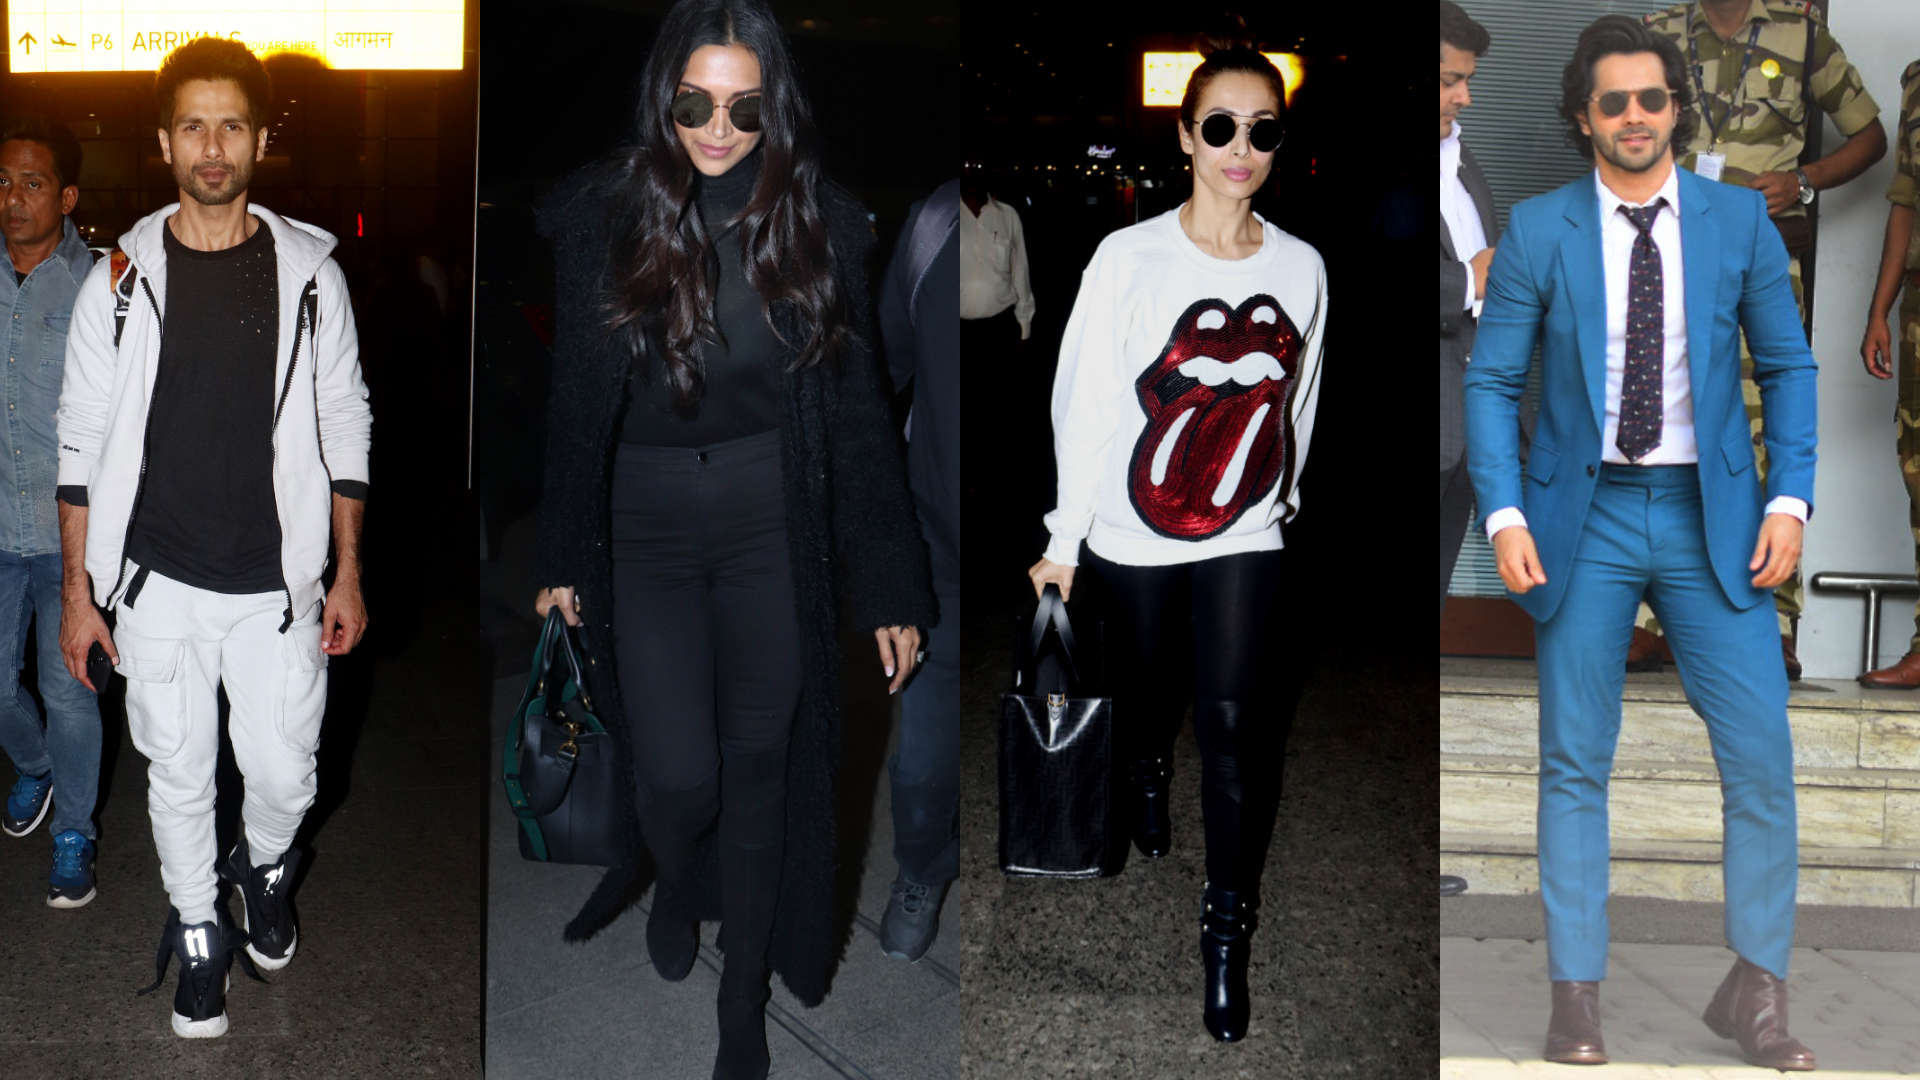 Deepika Padukone, Ranbir Kapoor, Shahid Kapoor and others jet set in style this week